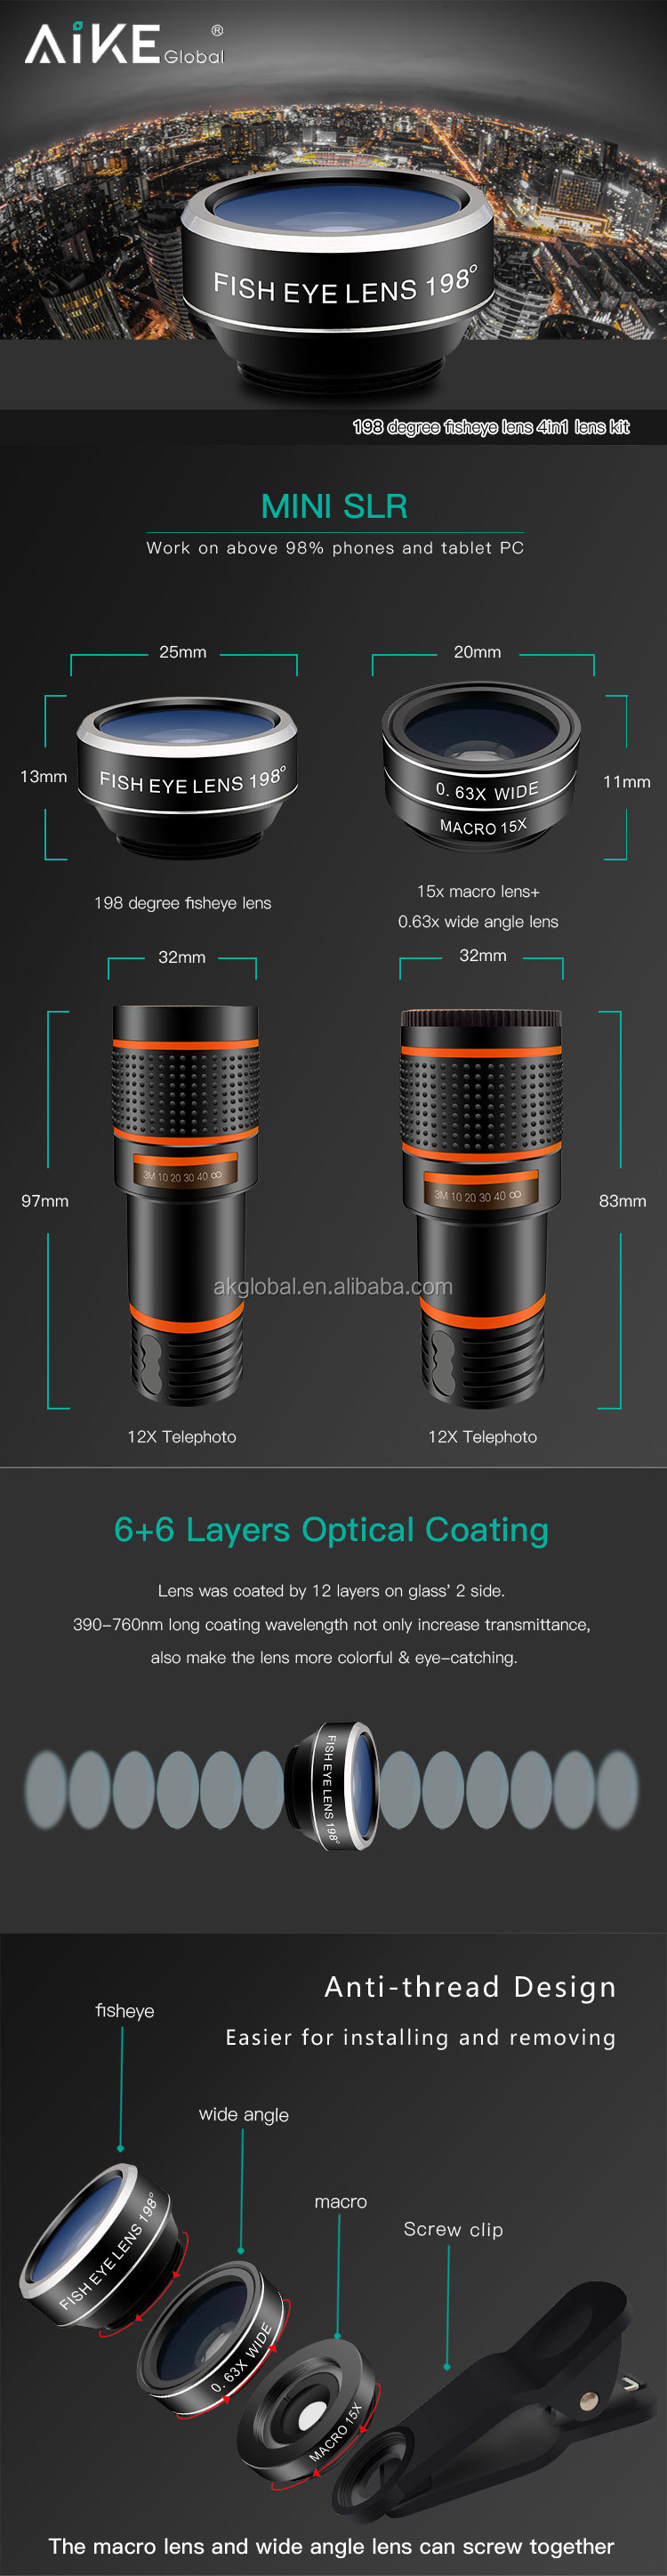 2018 Trending products amazon mobile phone camera 4 in 1 lens telescope wide angle fisheye macro lens kit